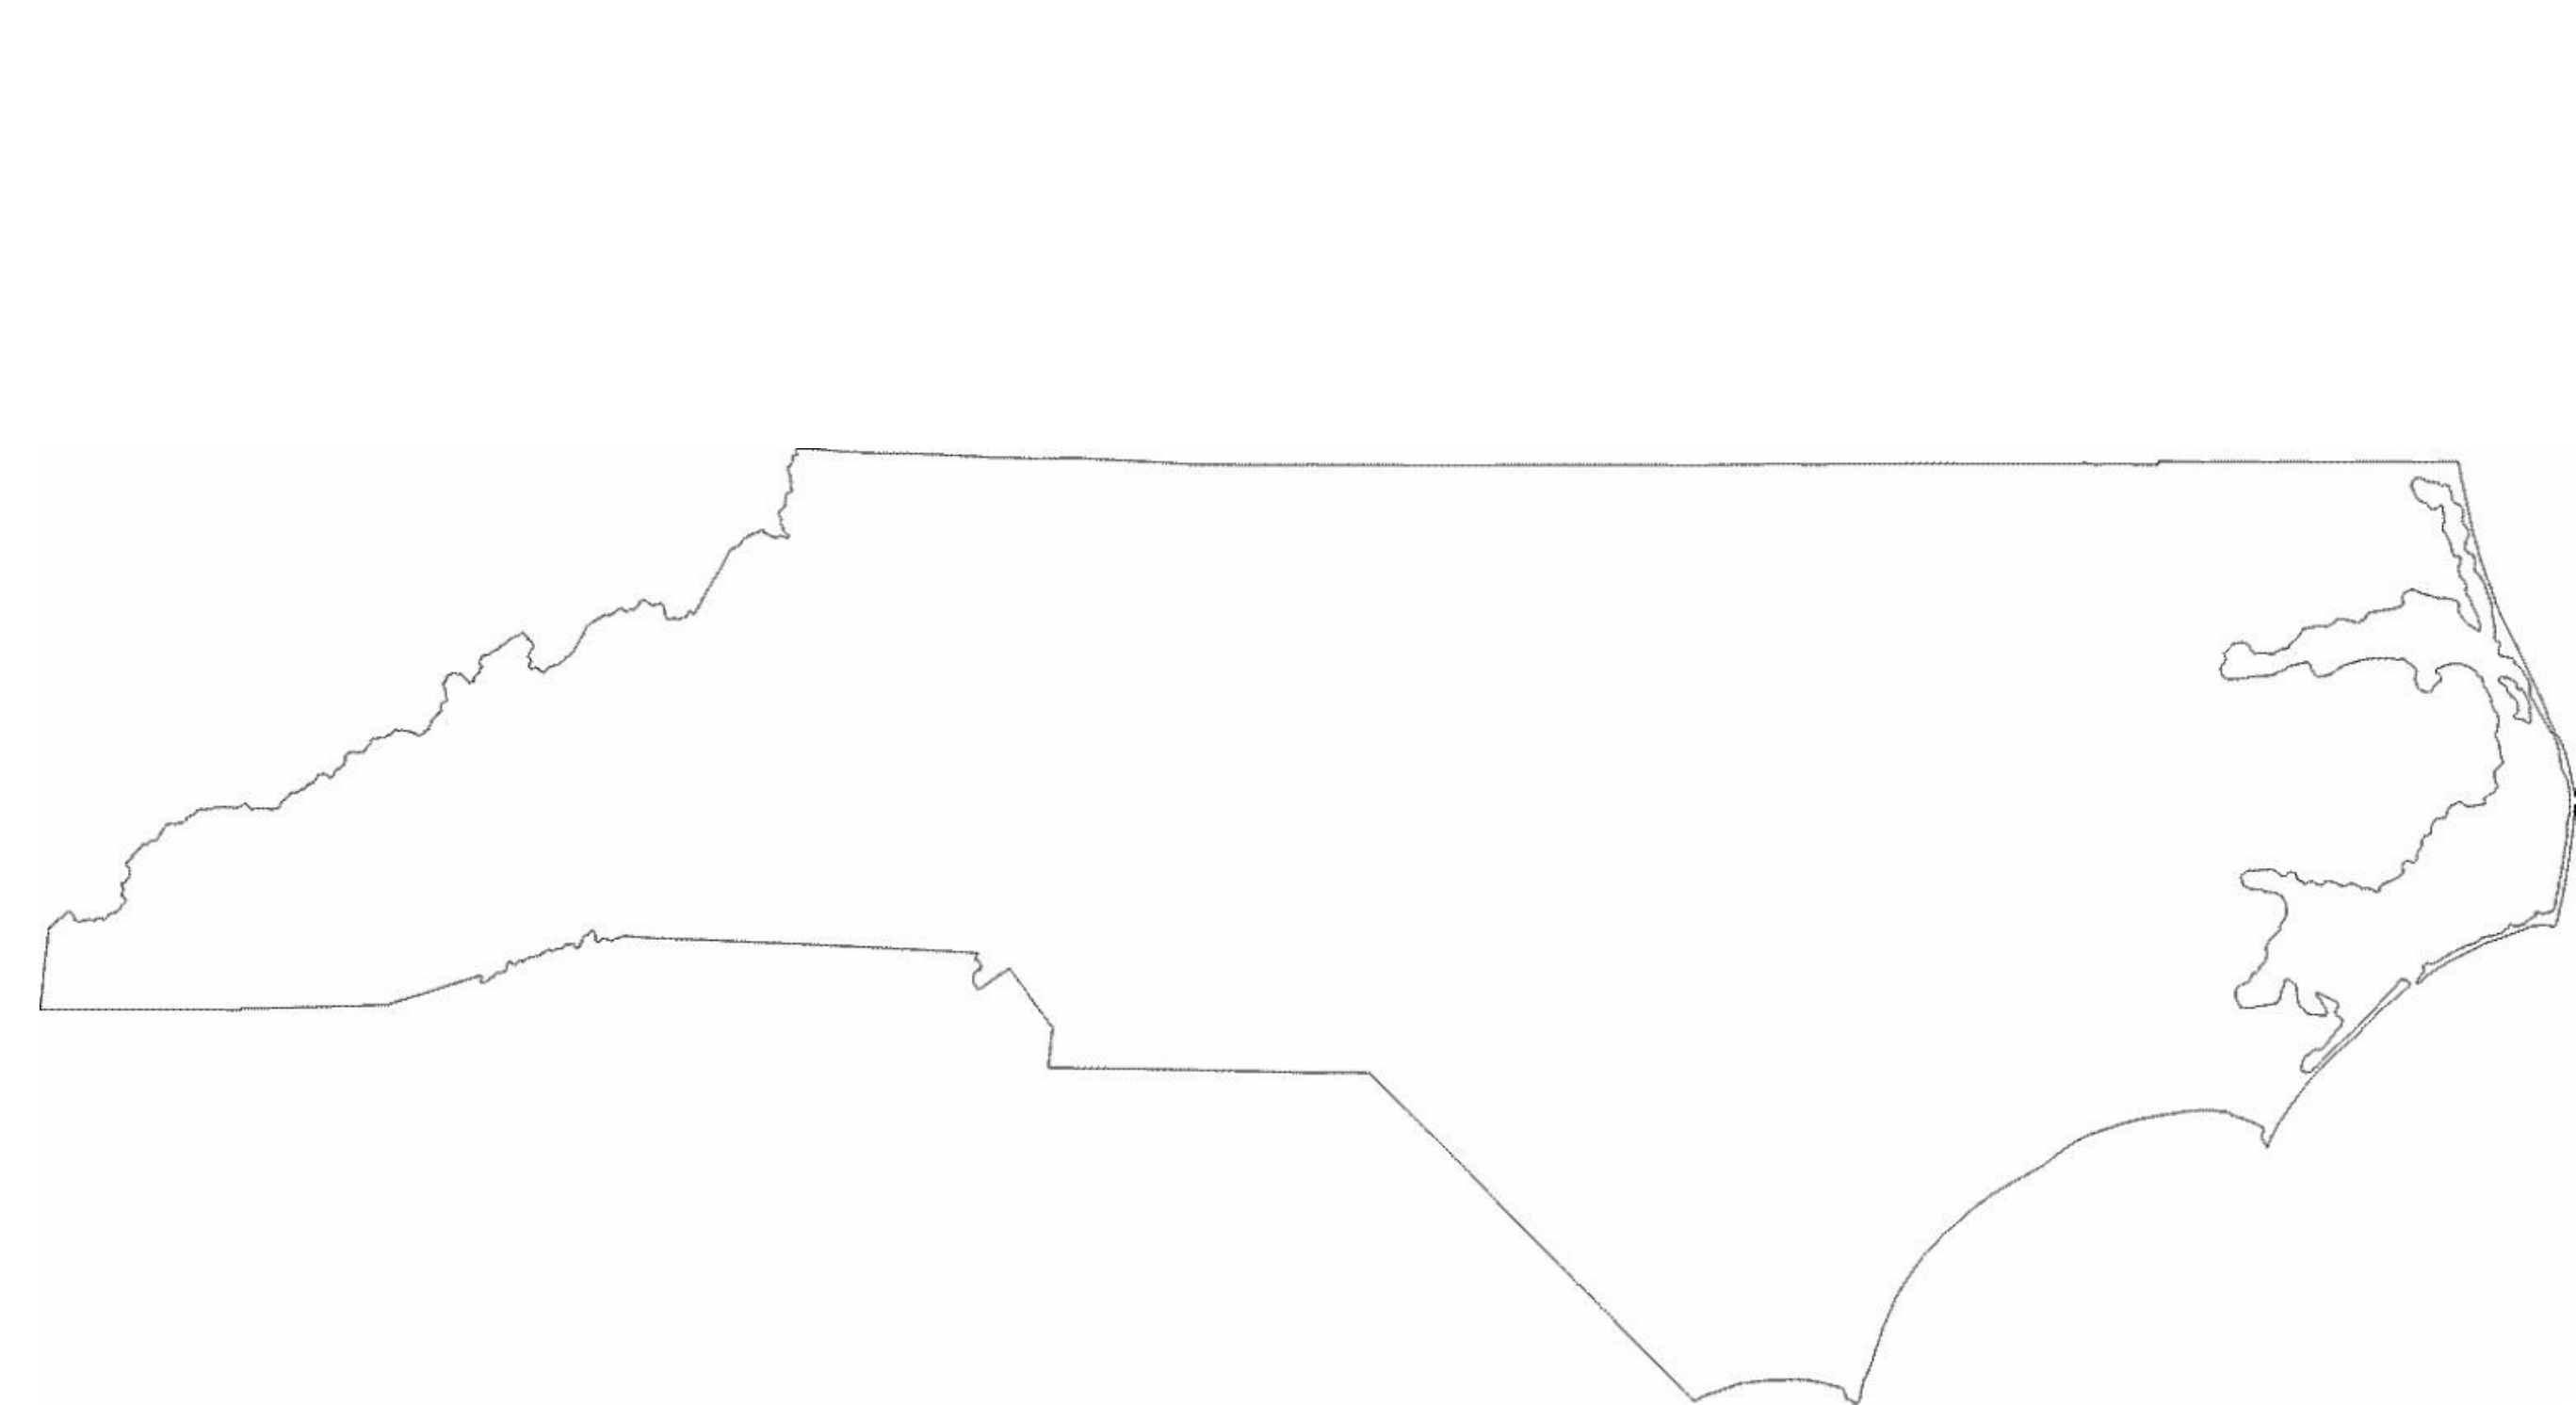 Outline Map Of North Carolina With North Clipart Drawn : Outline.